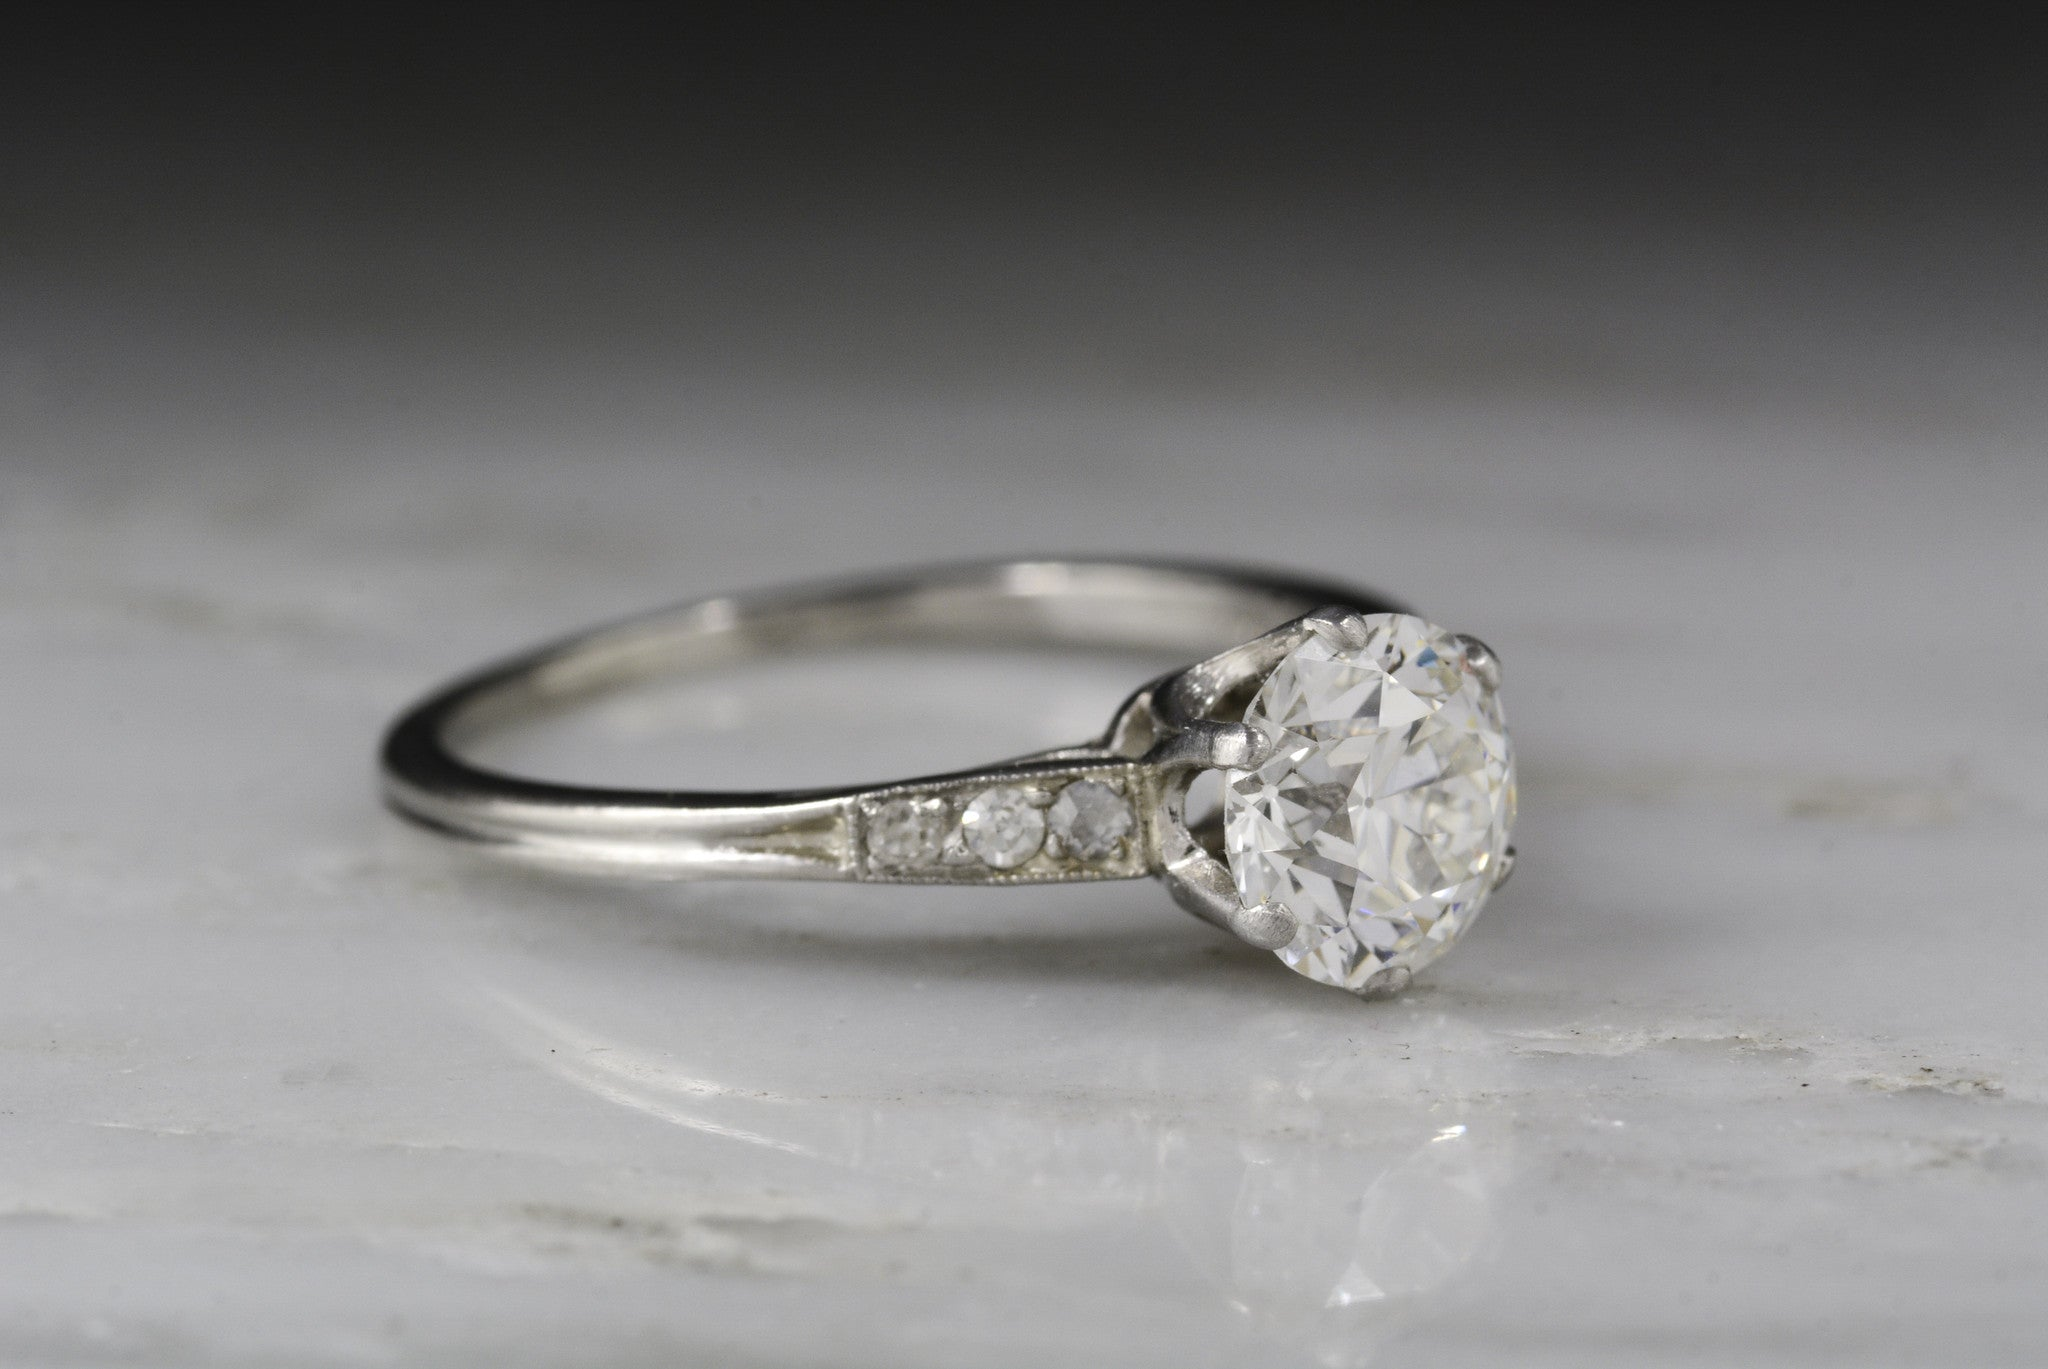 f5505d2dc82ed Antique Tiffany & Co. Post Art Deco / Retro Platinum Engagement Ring with a  GIA Certified 1.17 Carat Old European Cut Diamond Center